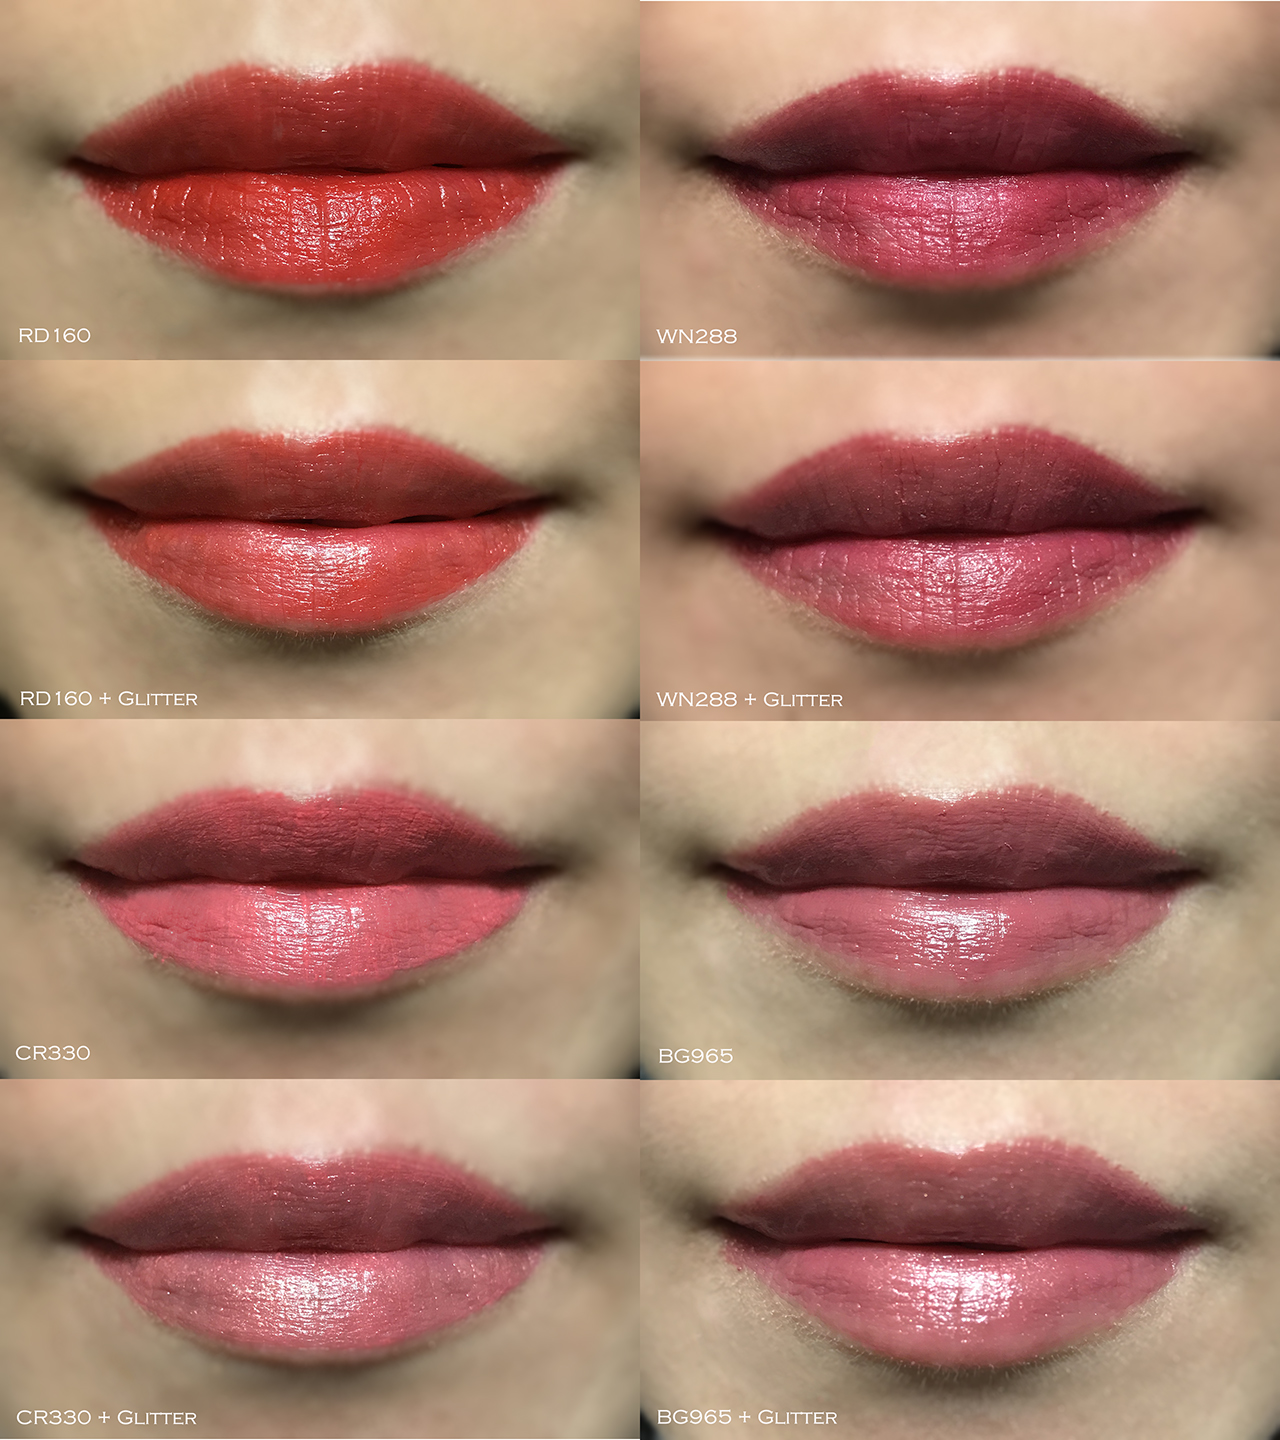 Shu Uemura Rouge Unlimited Central full lip swatches